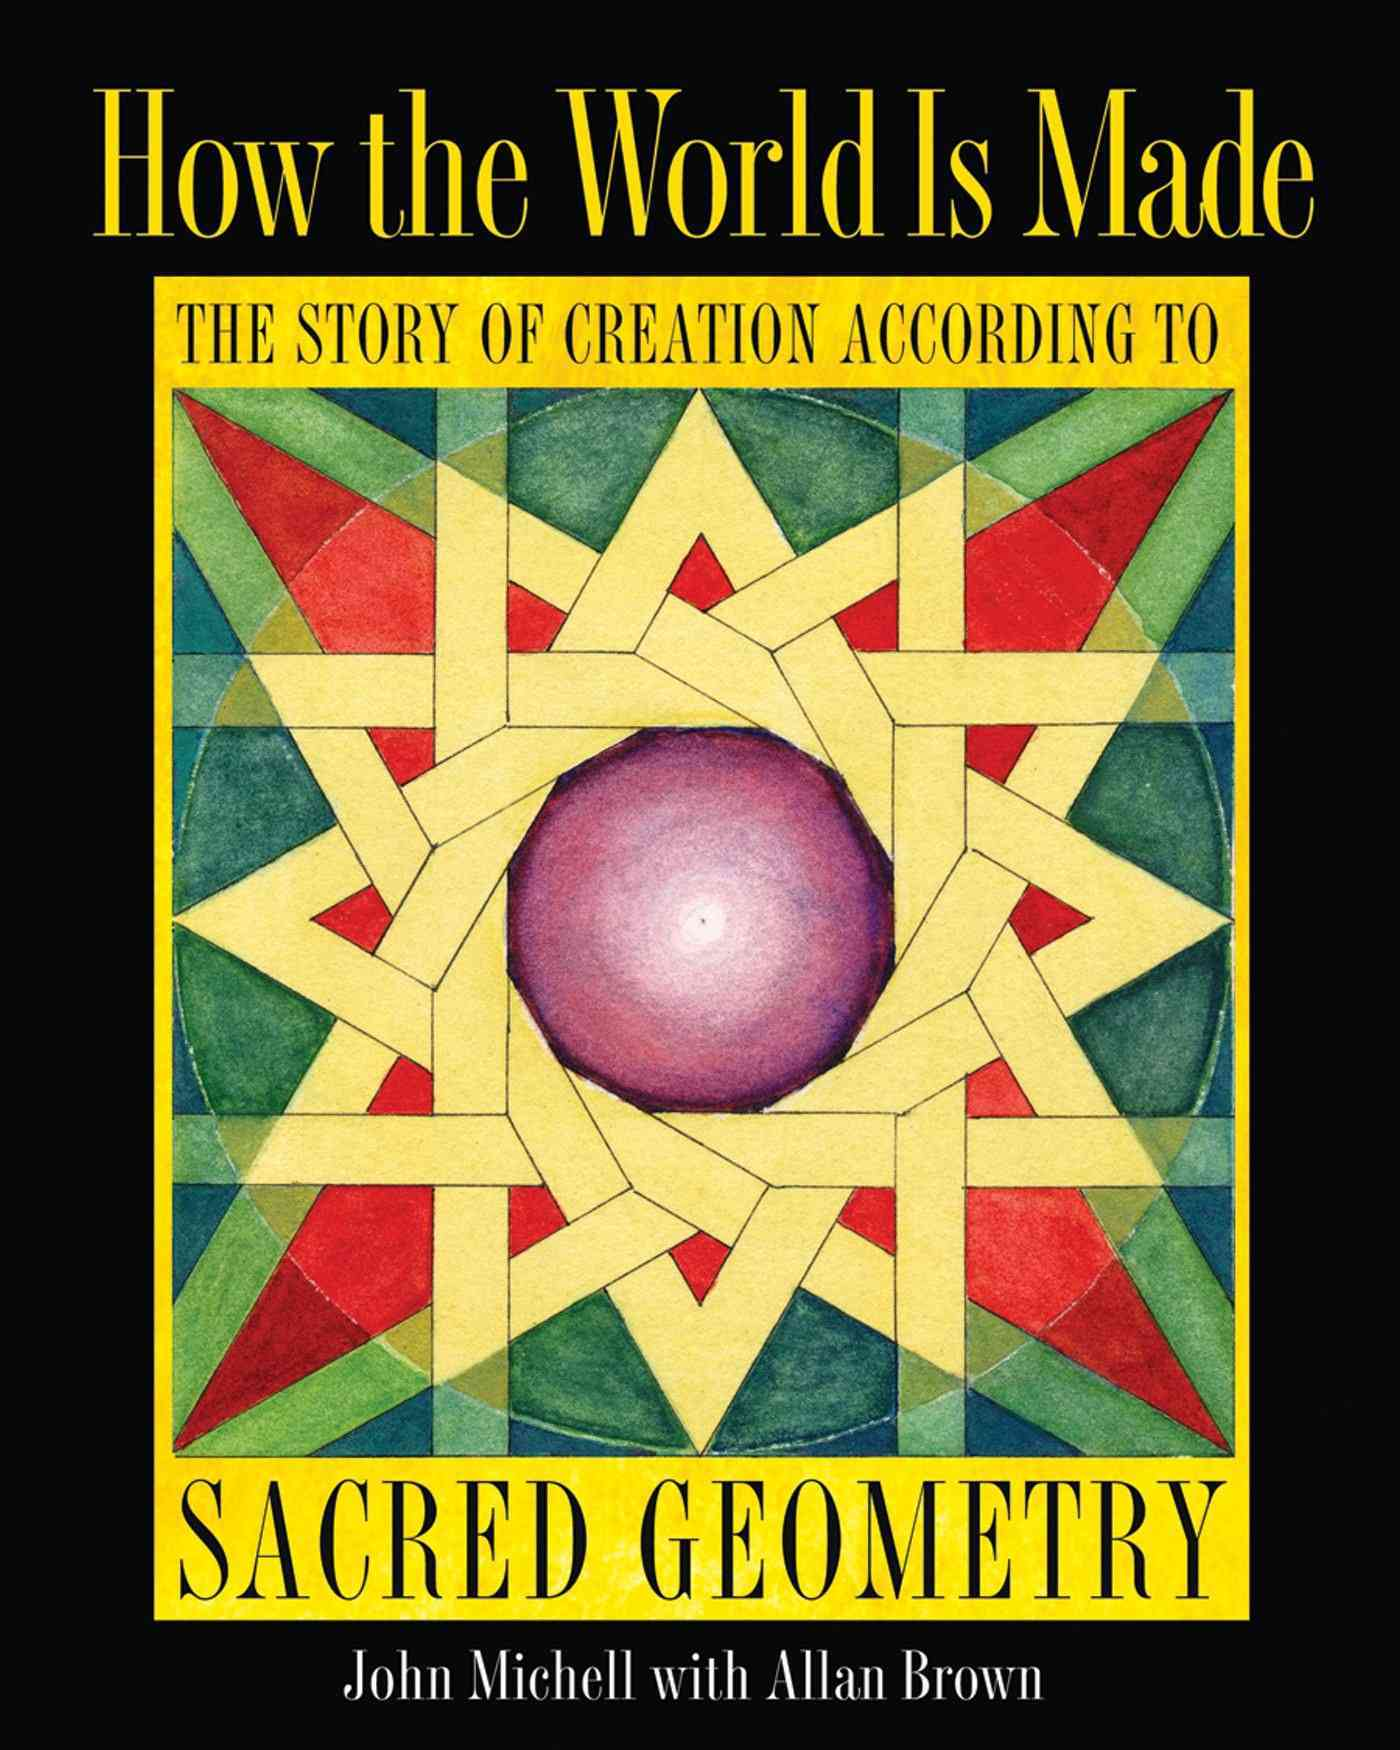 How the World Is Made: The Story of Creation According to Sacred Geometry (Hardcover)